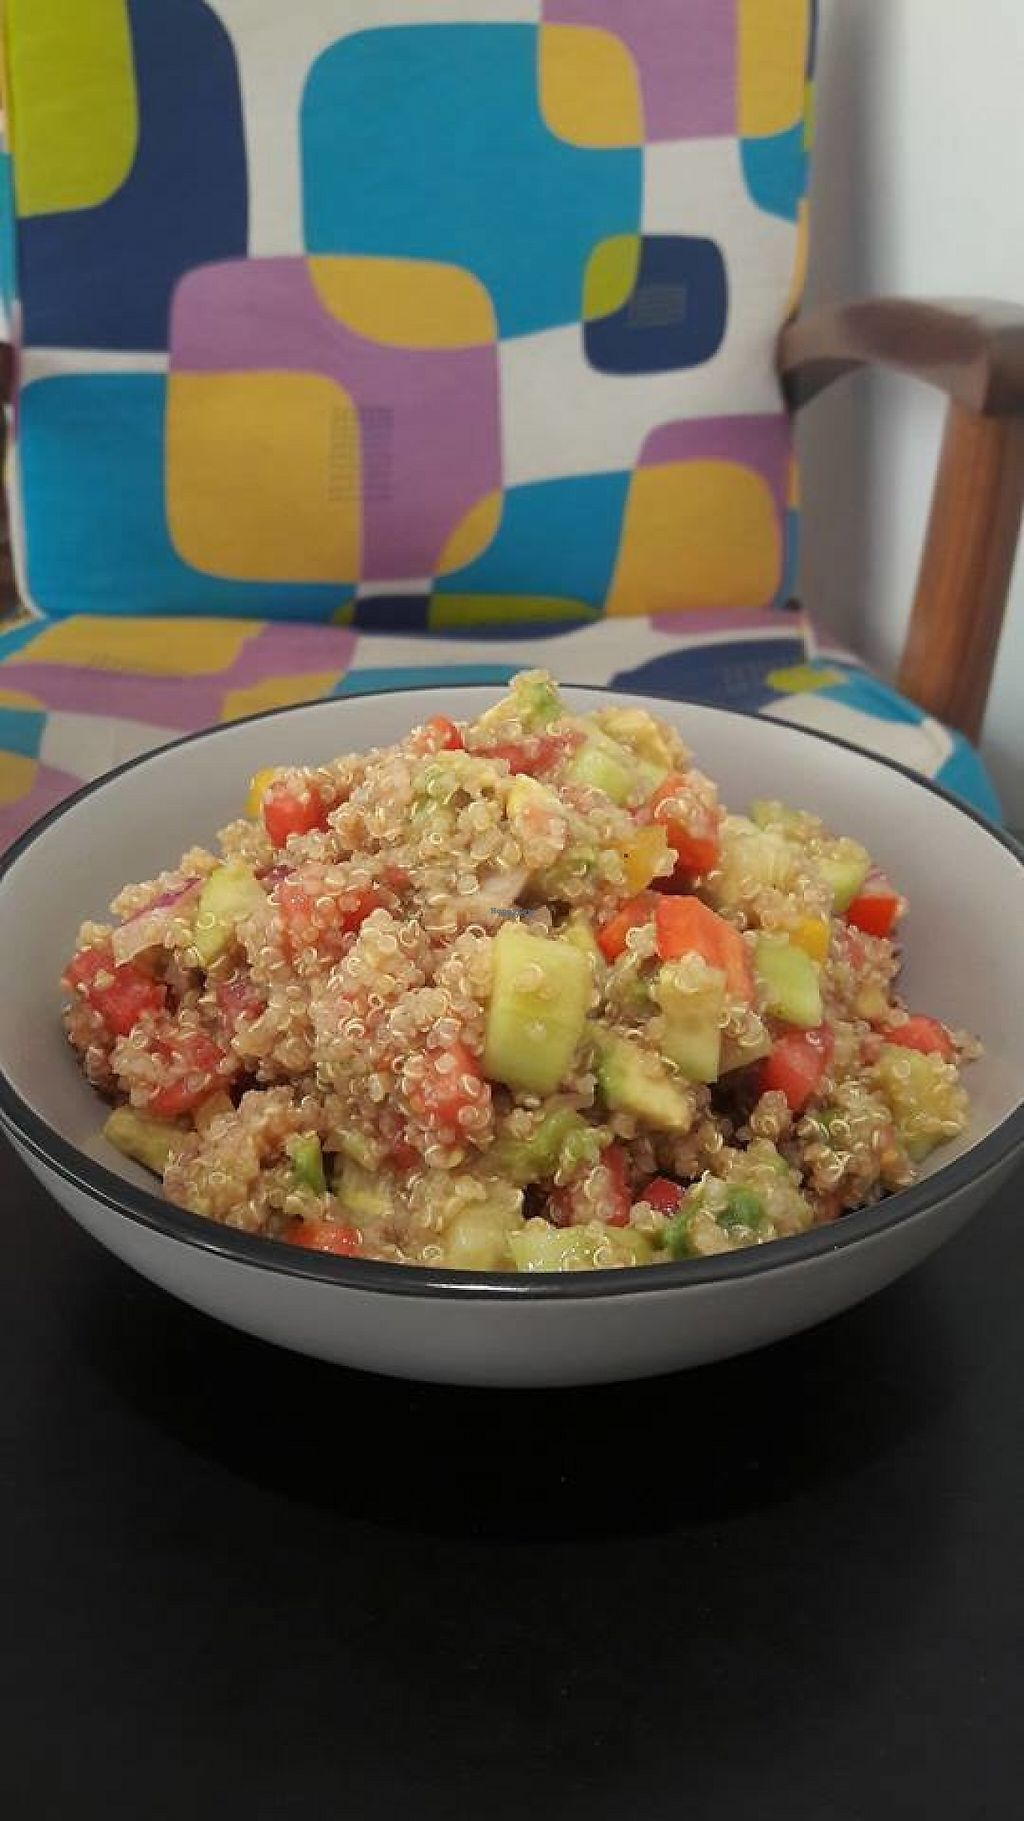 "Photo of To Bazaki Juice Bar  by <a href=""/members/profile/community"">community</a> <br/>quinoa salad <br/> November 12, 2016  - <a href='/contact/abuse/image/82289/188941'>Report</a>"